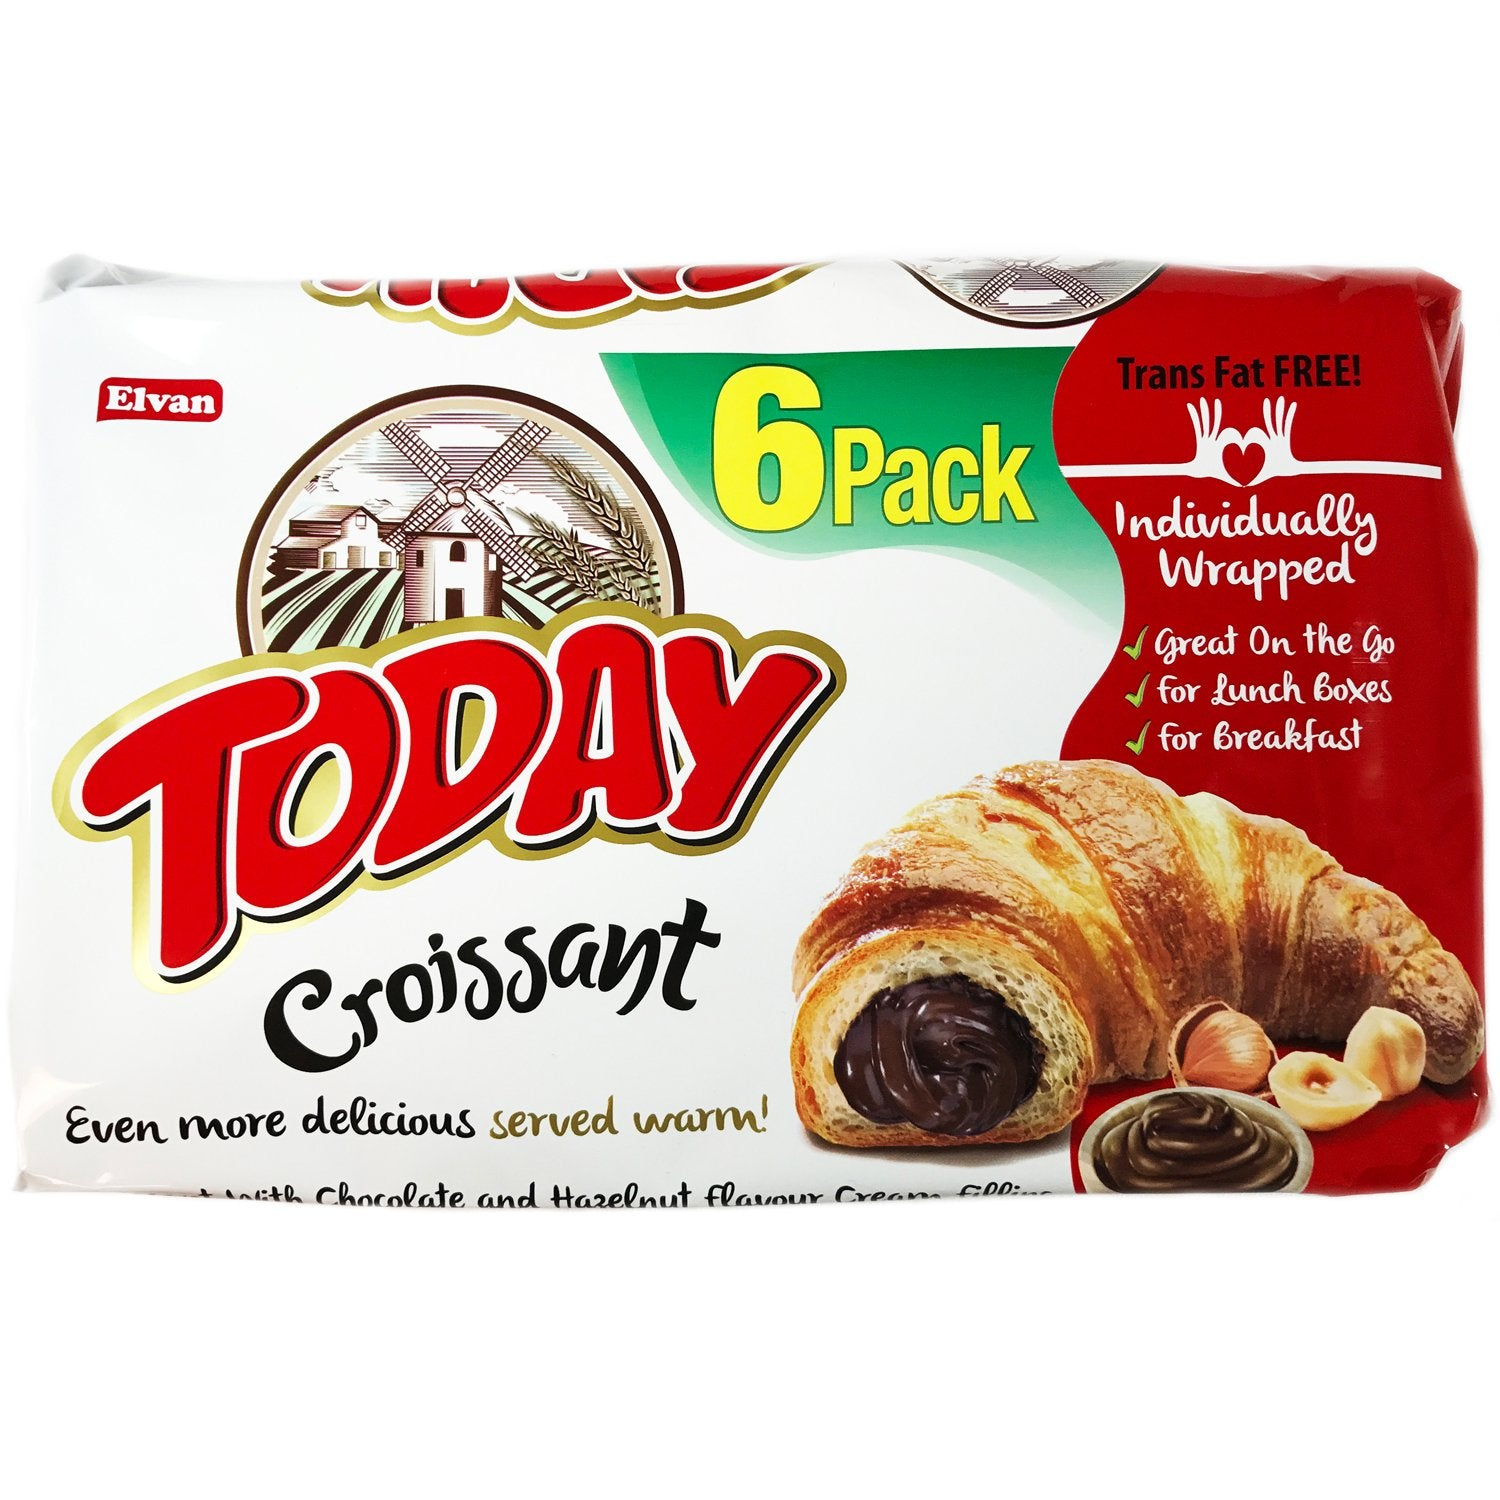 Today Chocolate and Hazelnut Croissant - 6 pack